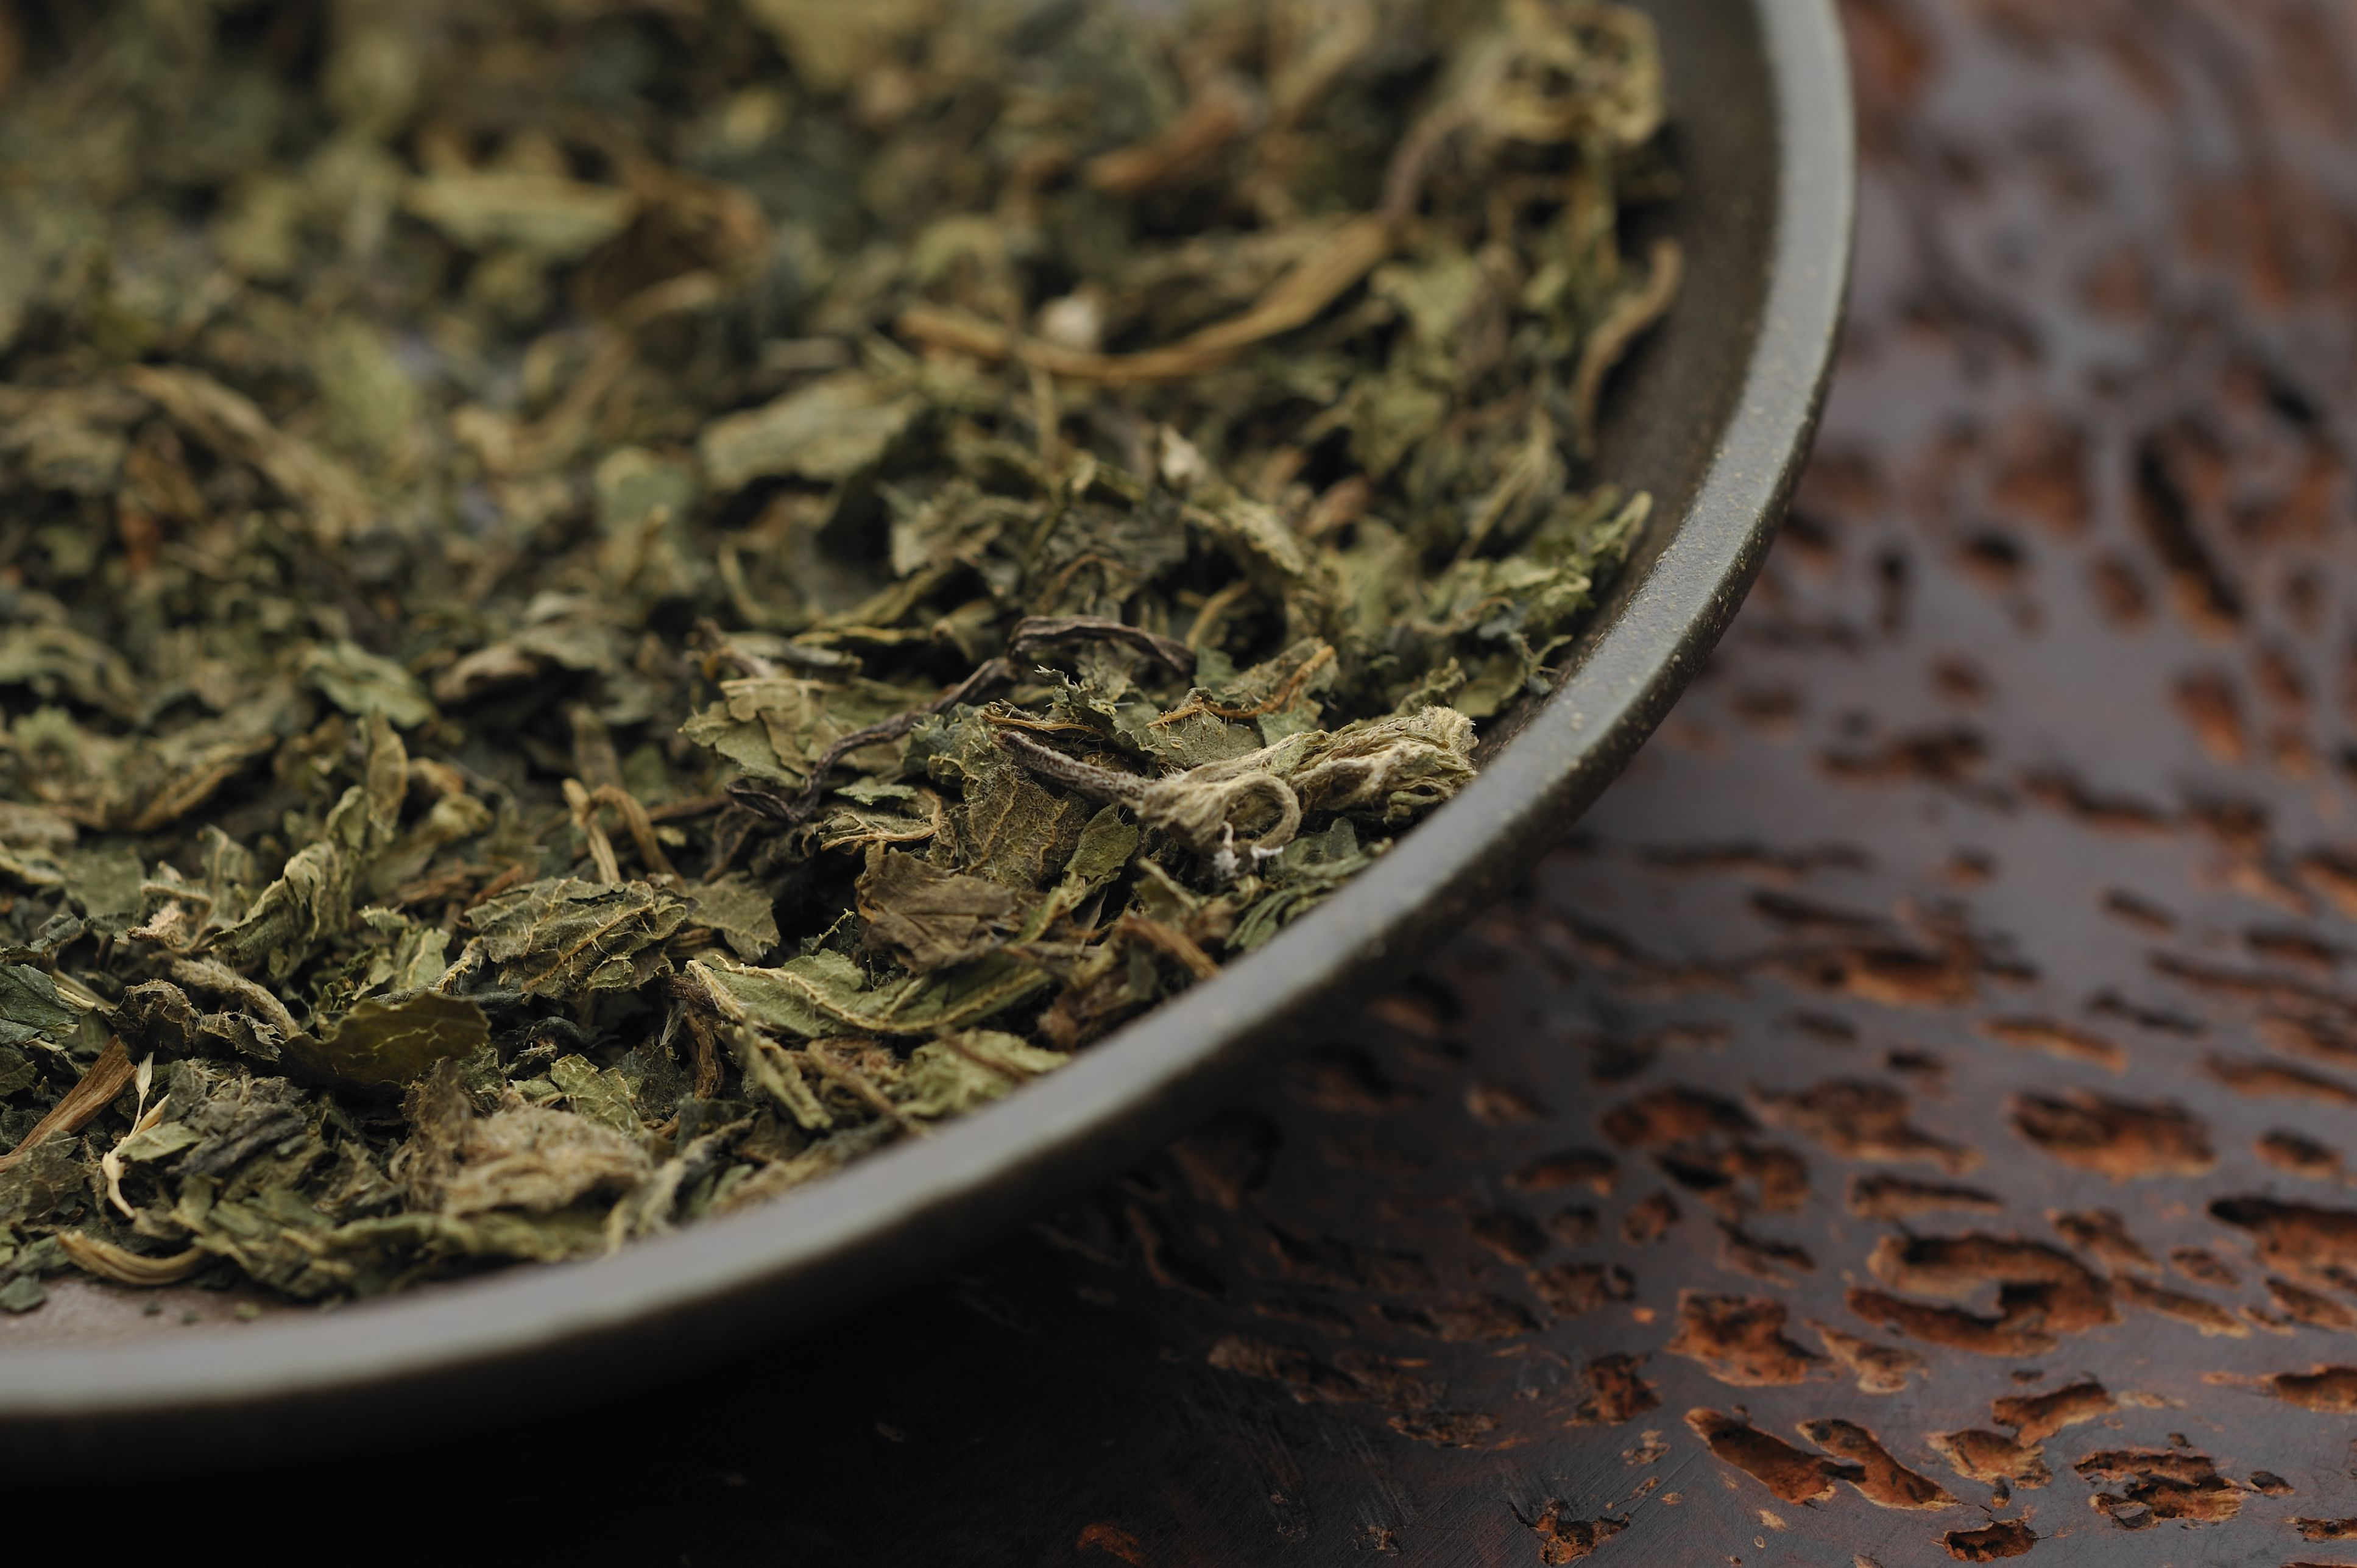 Stinging nettle dried herb in bowl